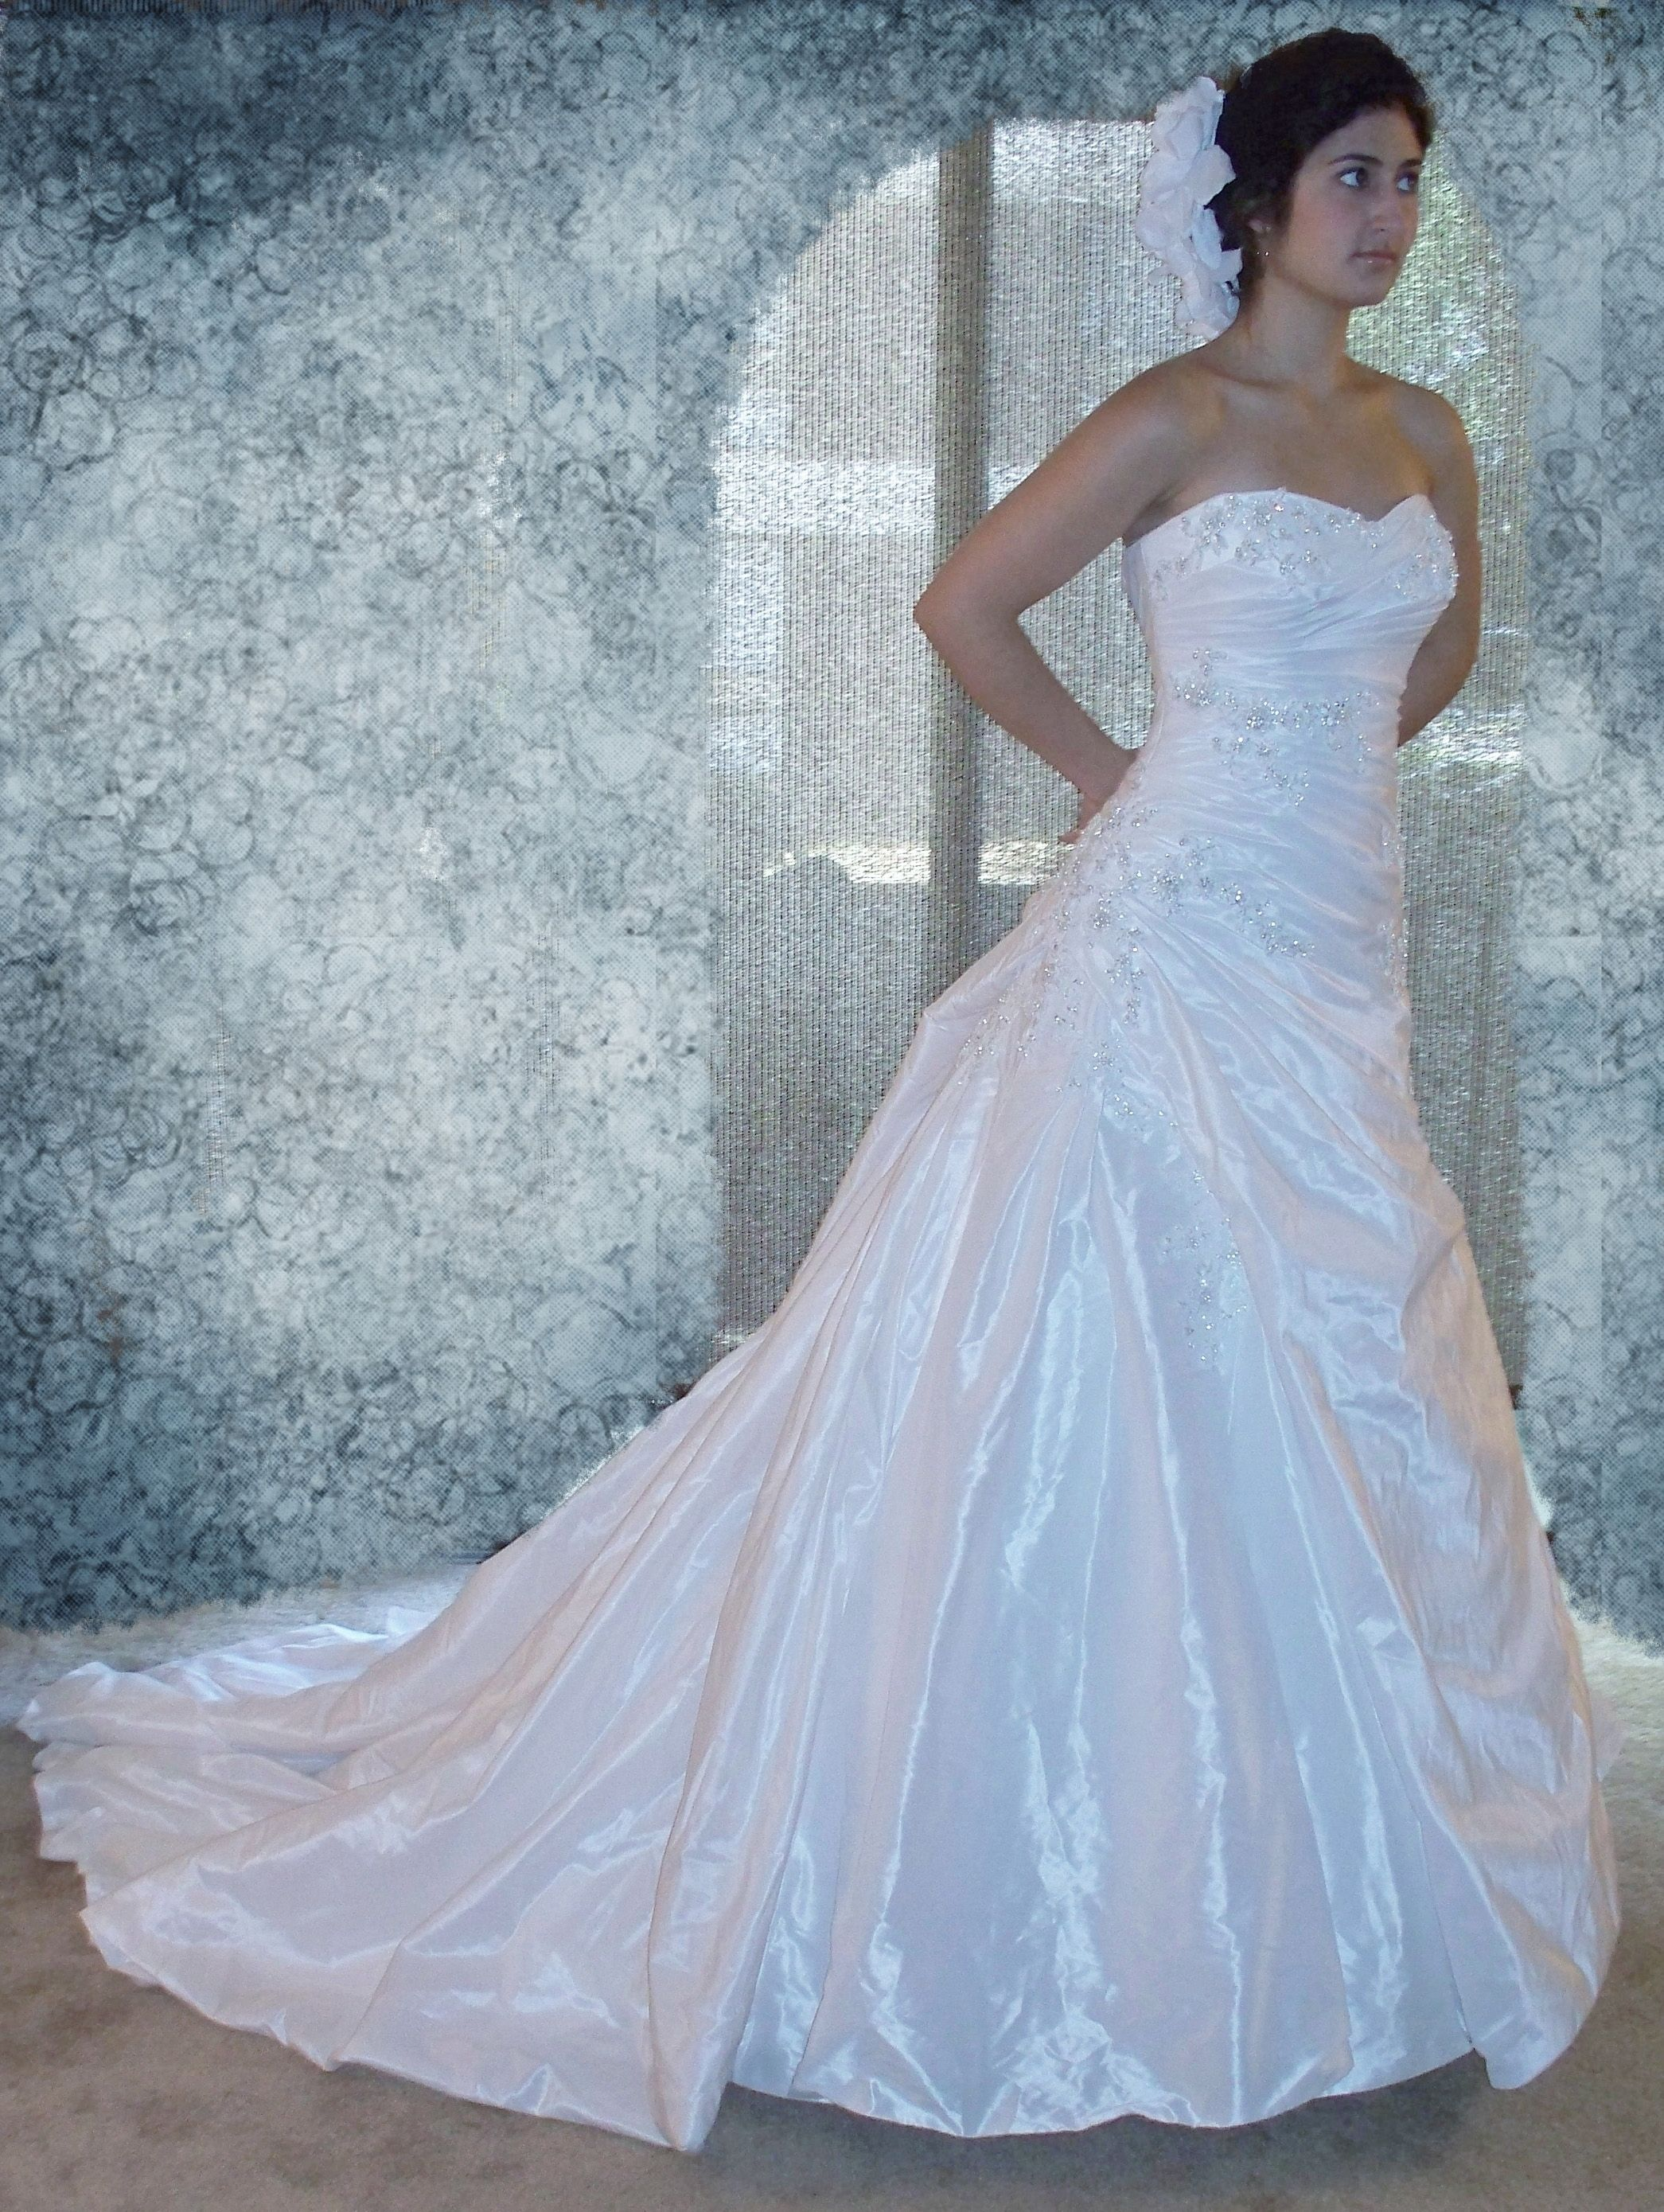 Enchanting Eve Of Milady Bridal Gowns Adornment - All Wedding ...